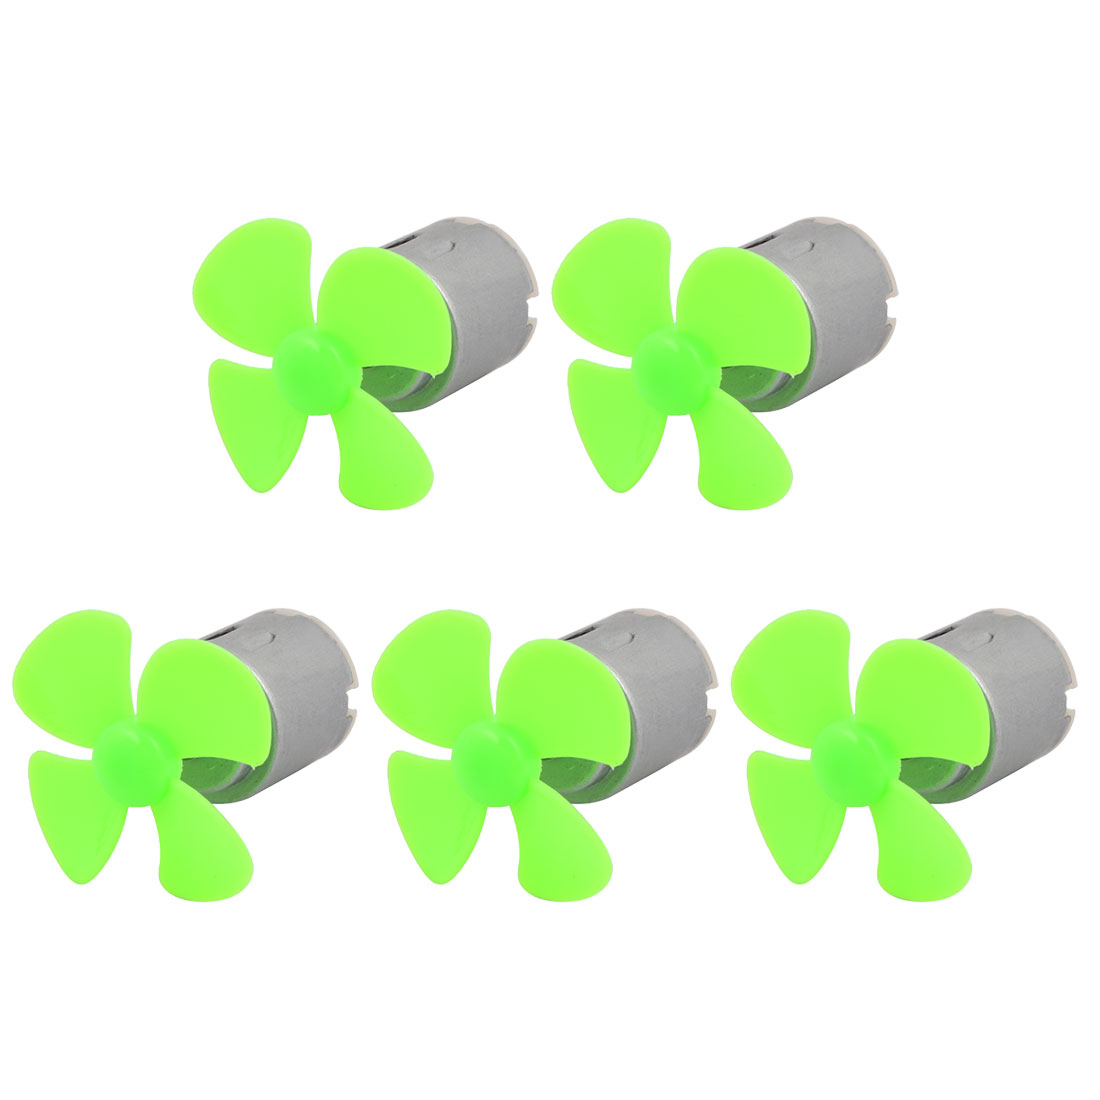 5pcs DC 3V 0.13A 16500RPM Strong Force Motor 4 Vanes 40mm Green Propeller for RC Aircraft